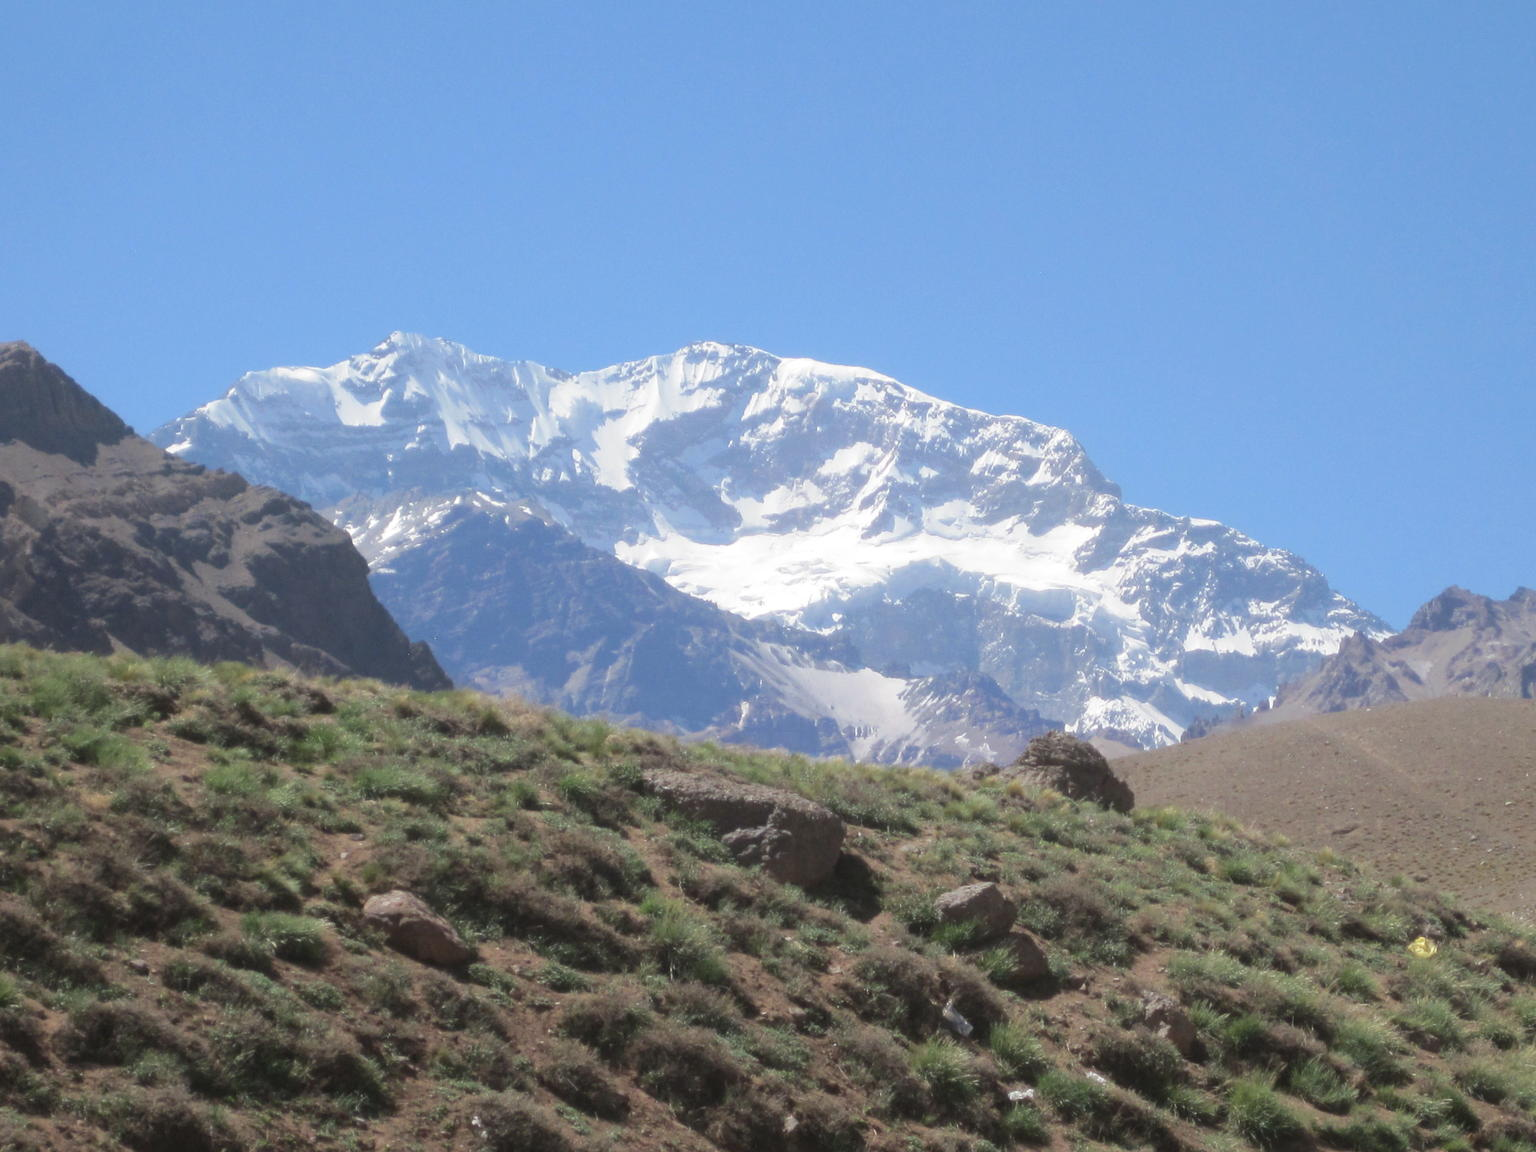 Andes Day Trip from Mendoza Including Aconcagua, Uspallata and Puente del Inca